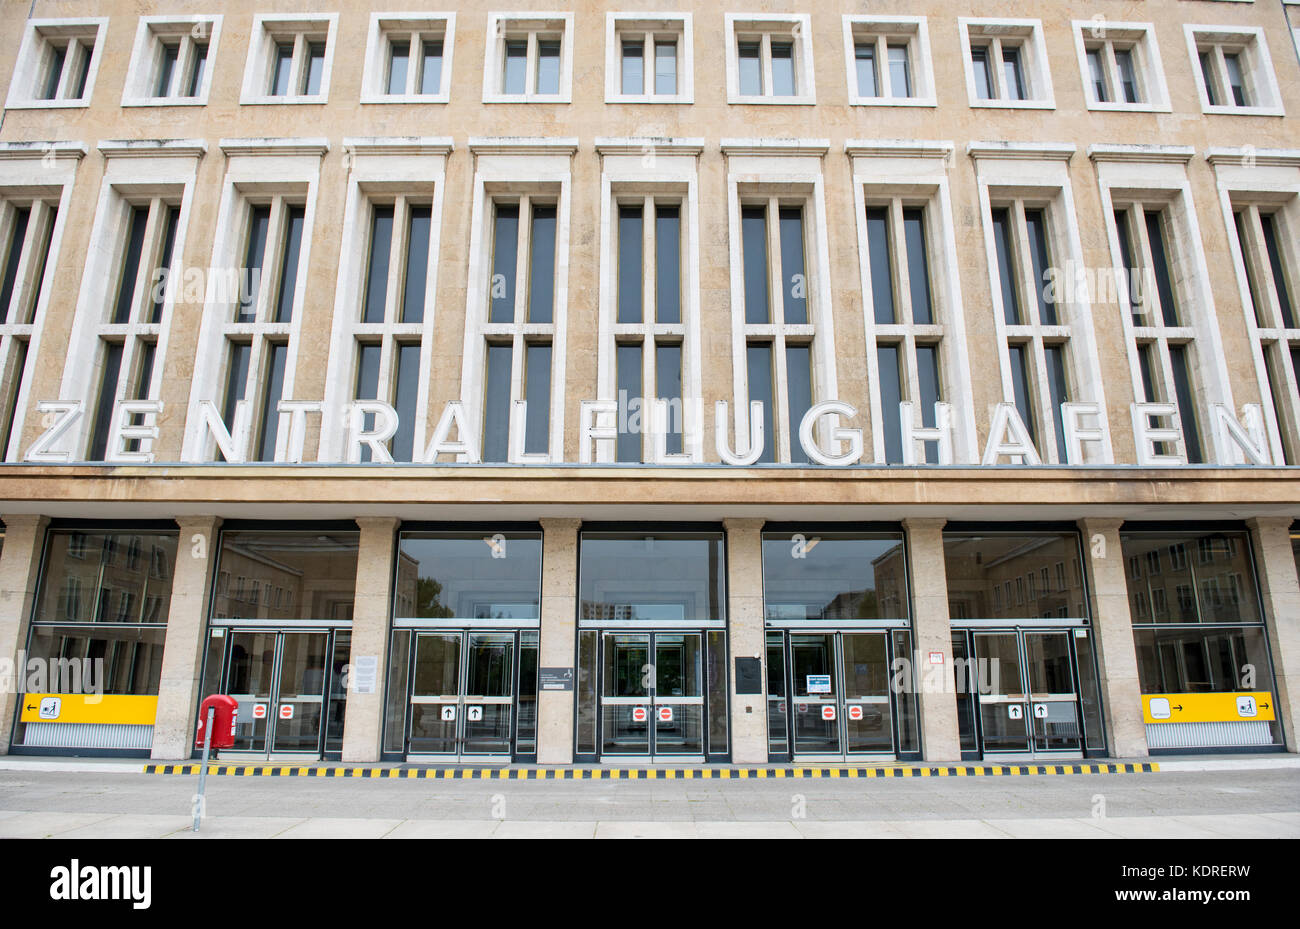 Exterior of Tempelhof airport in Berlin, Germany, which ceased operating in 2008 - Stock Image